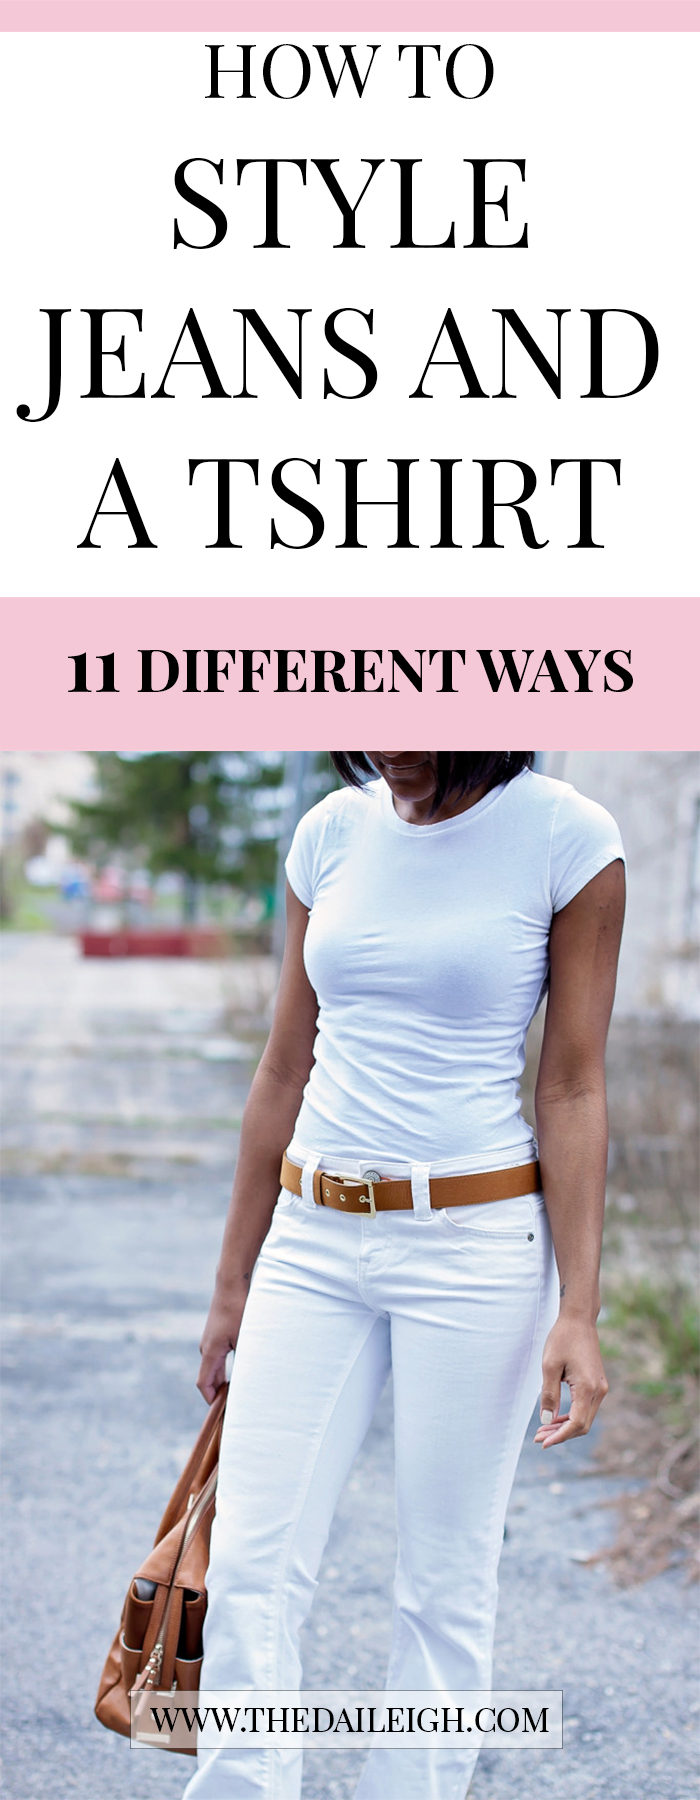 How To Style Jeans And Tshirt